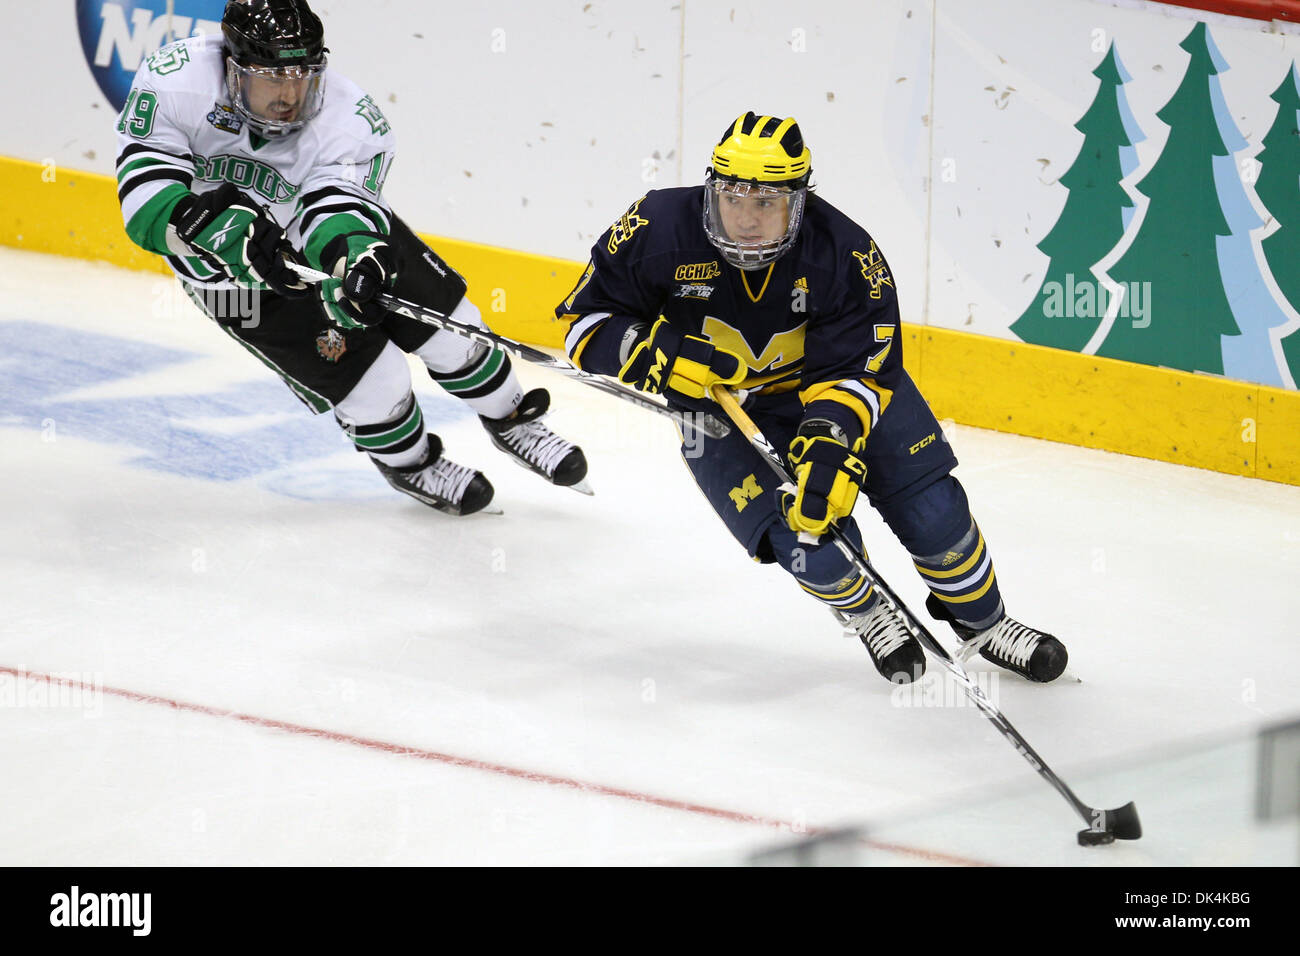 Apr. 7, 2011 - St Paul, Minnesota, U.S - Michigan defenseman Chad Langlais (7) is chased by North Dakota left wing Evan Trupp (19) in the first period of the NCAA Frozen Four between the University of Michigan Wolverines and the University of North Dakota Fighting Sioux at the Xcel Energy Center St, Paul, MN. After the first period Michigan led 1-0. (Credit Image: © Steve Kotvis/So - Stock Image